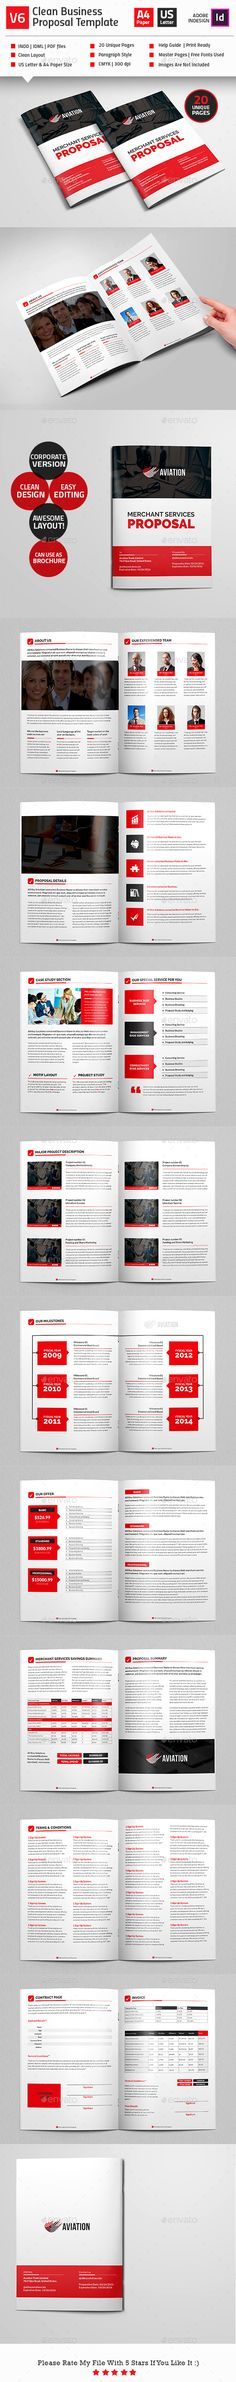 Proposal  Proposals Stationery Templates And Proposal Templates